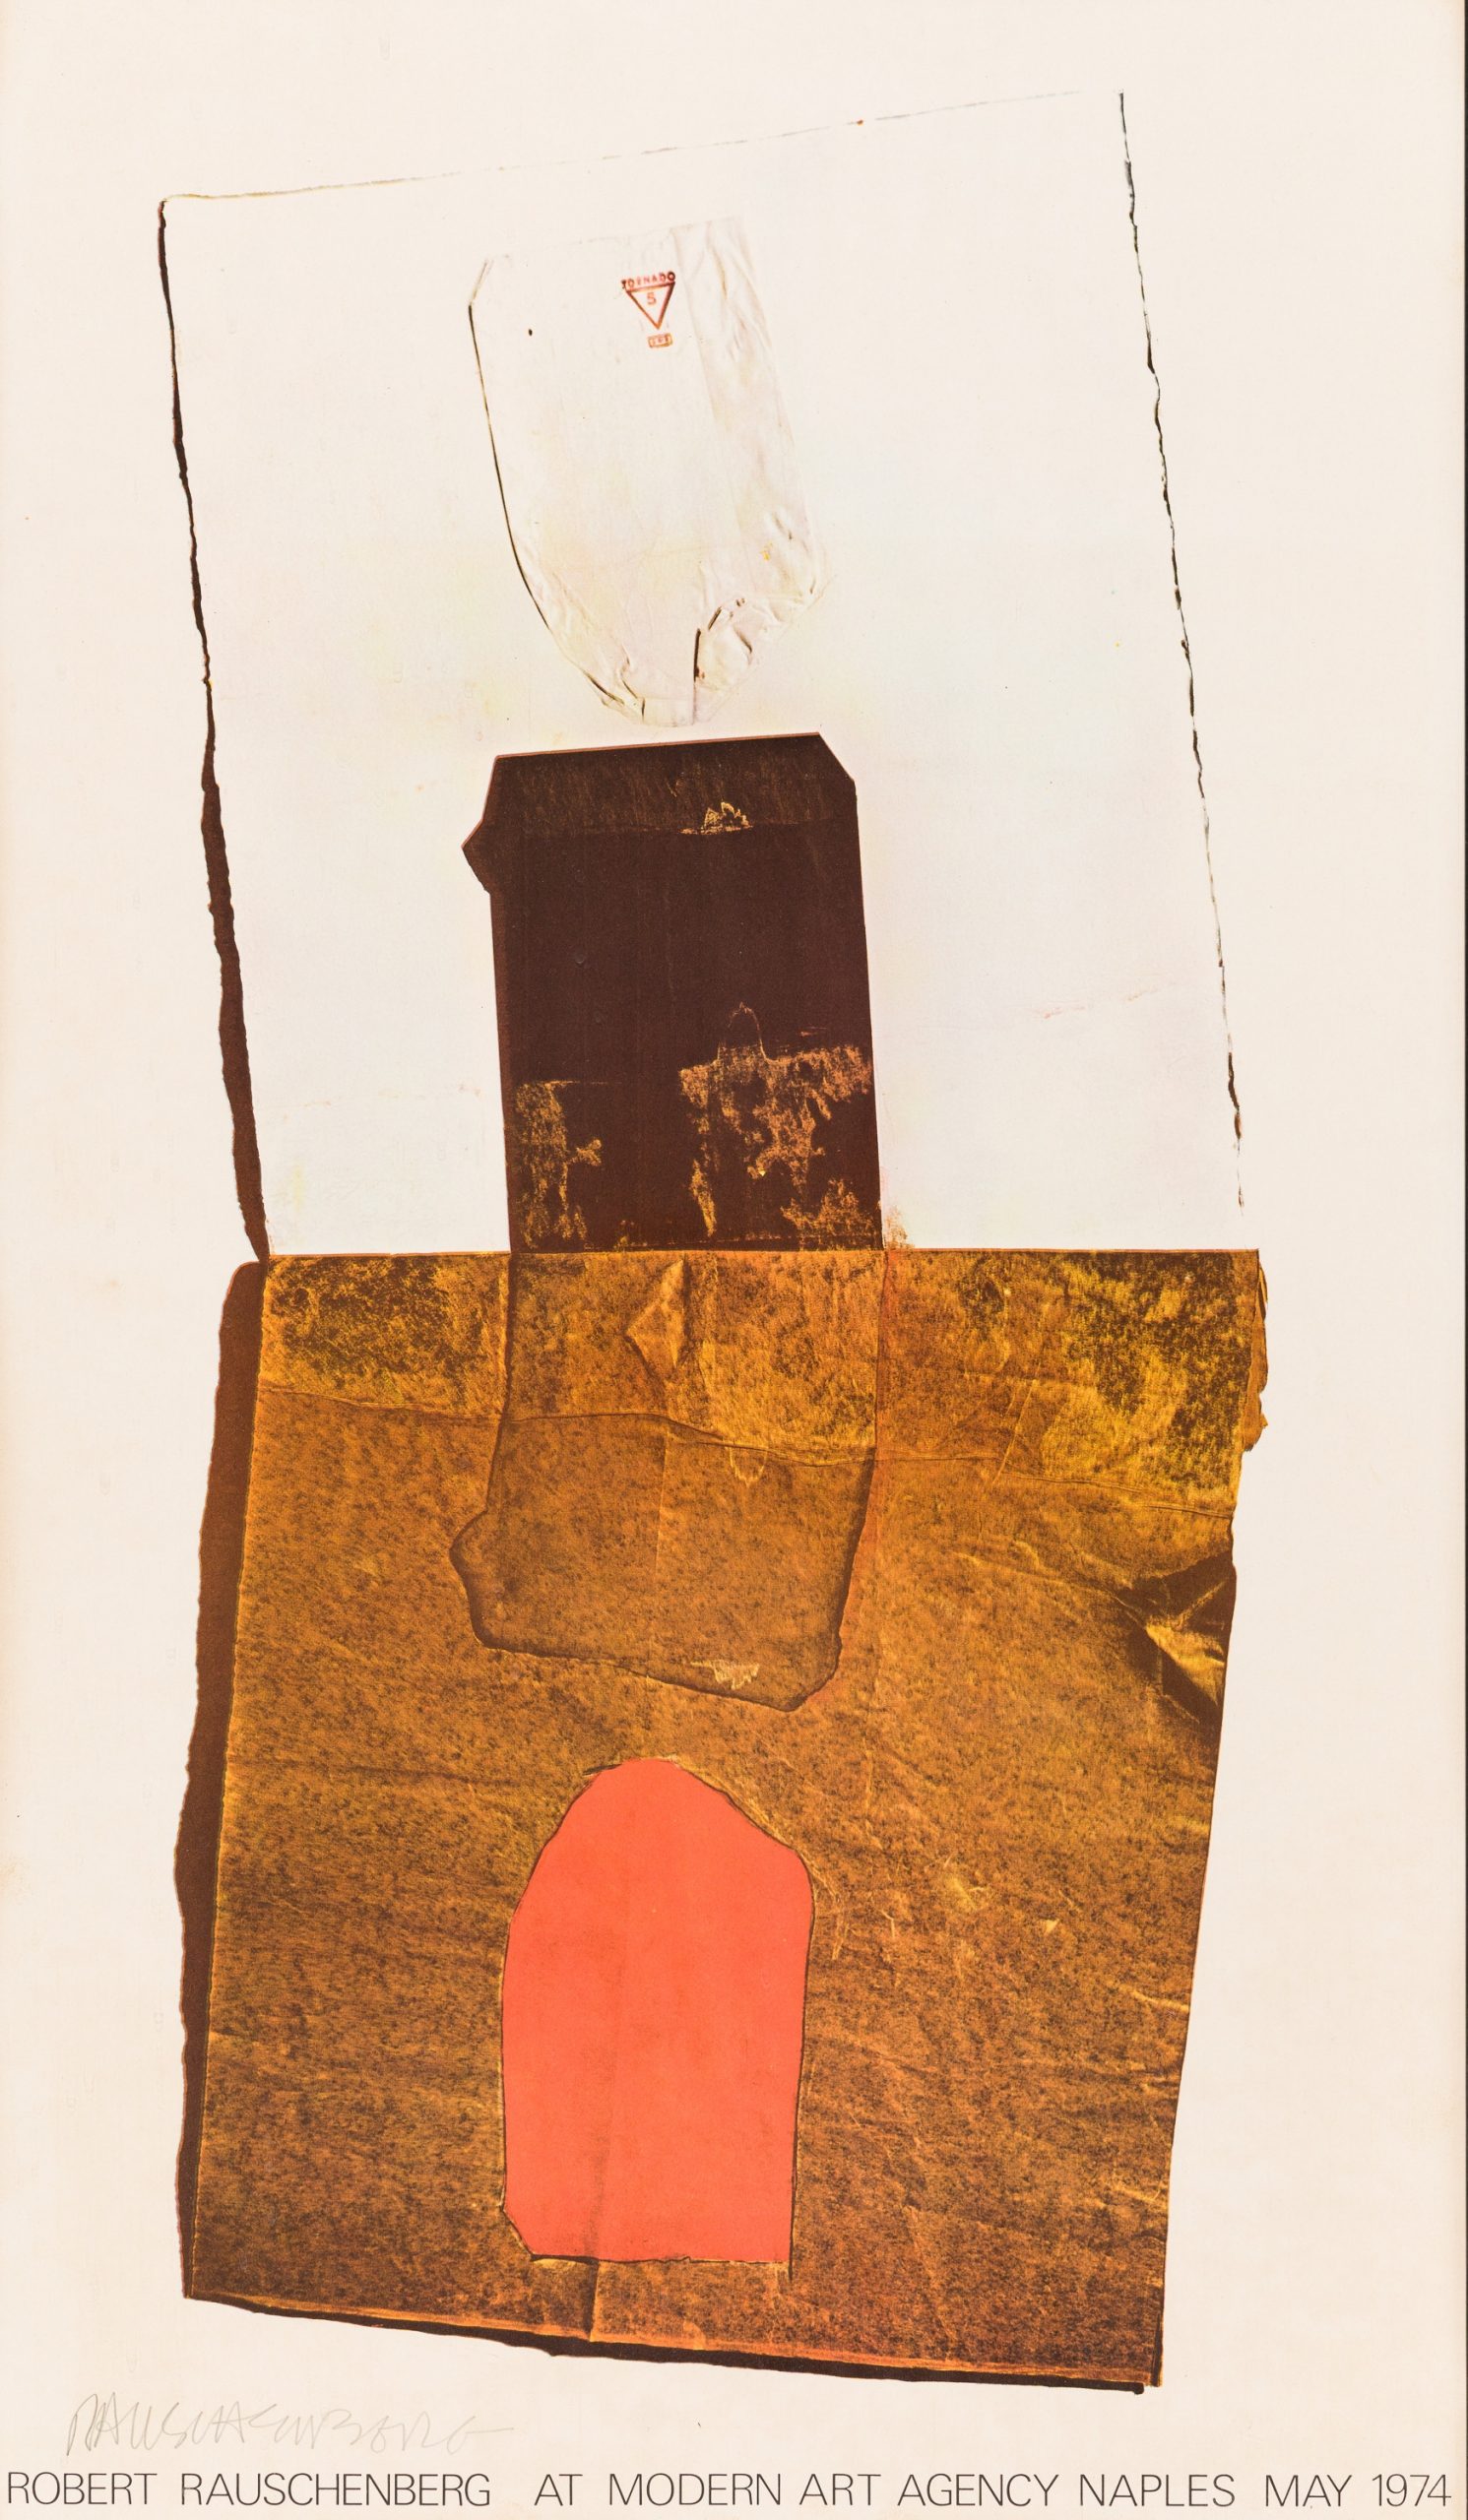 Robert Rauschenberg, Ohne Titel (Robert Rauschenberg at the Modern Art Agency in Naples May 1974)